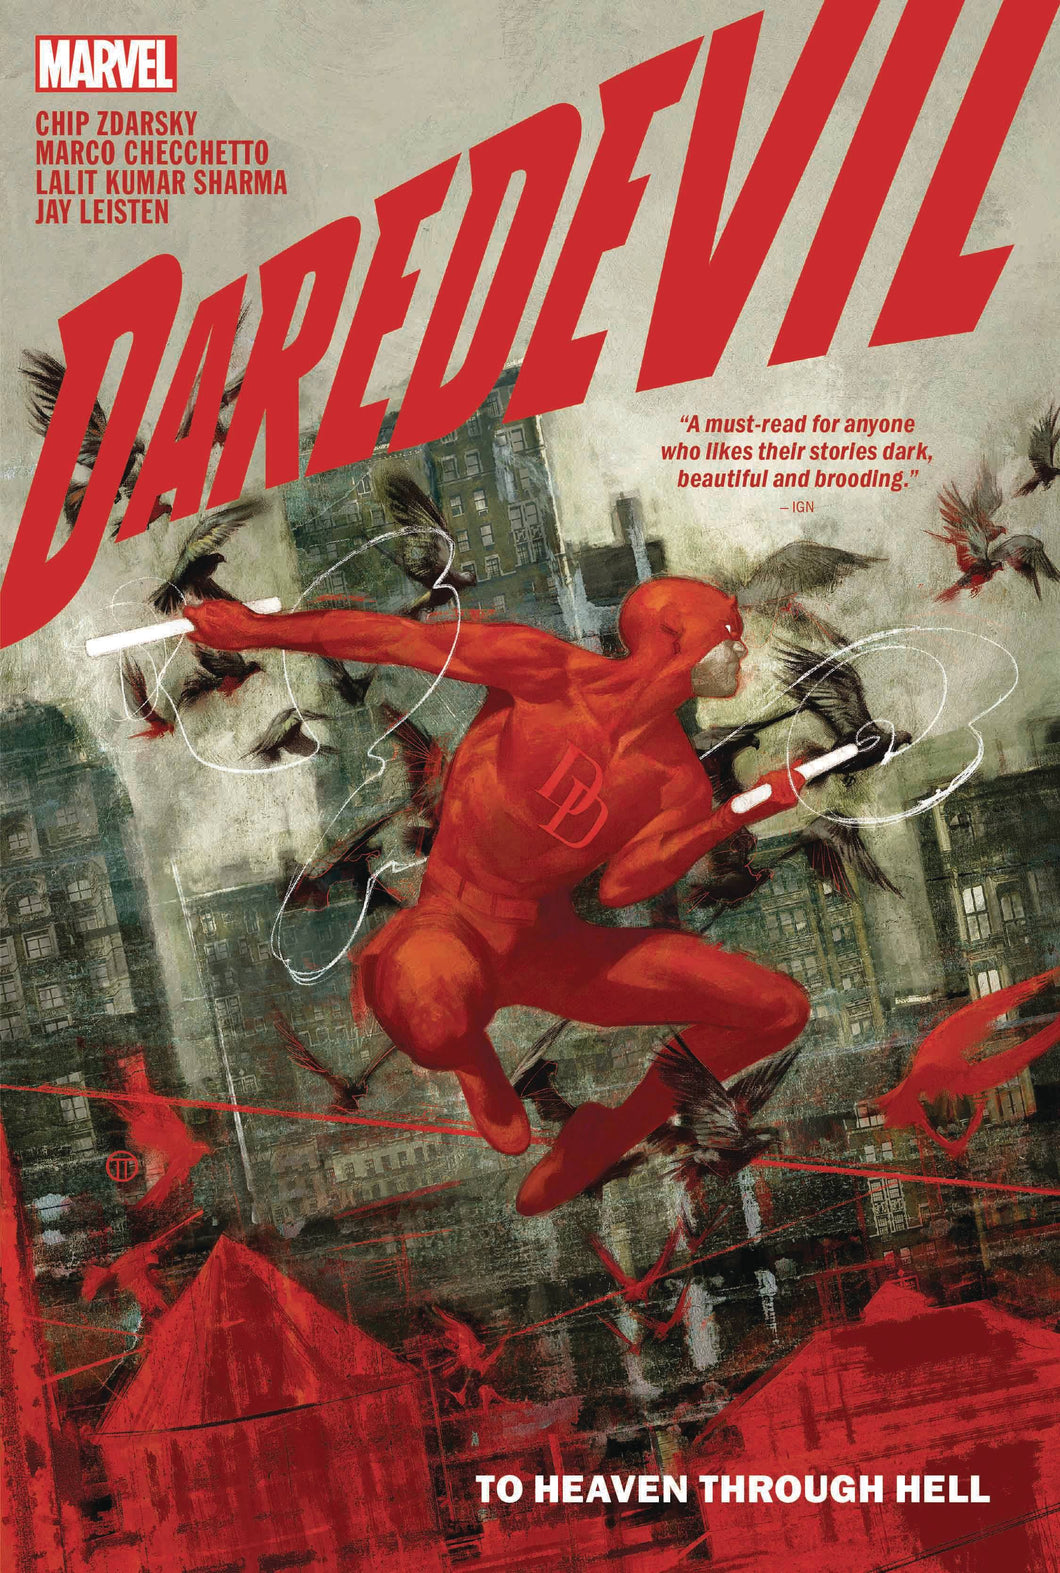 Daredevil By Chip Zdarsky HC Vol 01 to Heaven Through - Books